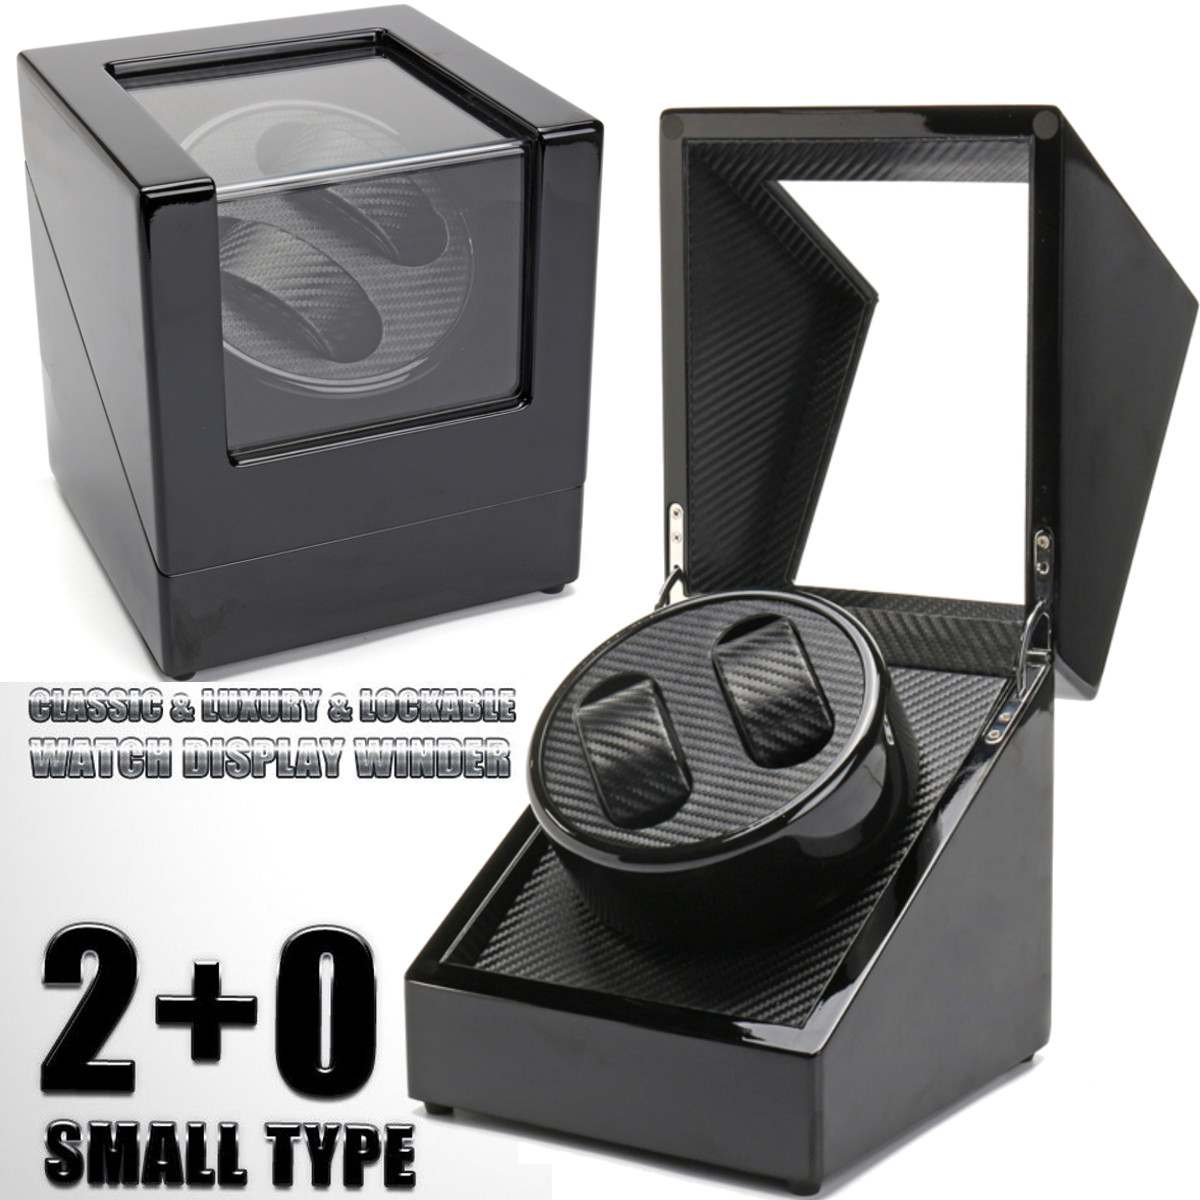 Double Watch Winders Wooden Lacquer Piano Glossy Black Carbon Fiber Quiet Motor Storage Display Watches Box US Plug 2019 NewDouble Watch Winders Wooden Lacquer Piano Glossy Black Carbon Fiber Quiet Motor Storage Display Watches Box US Plug 2019 New